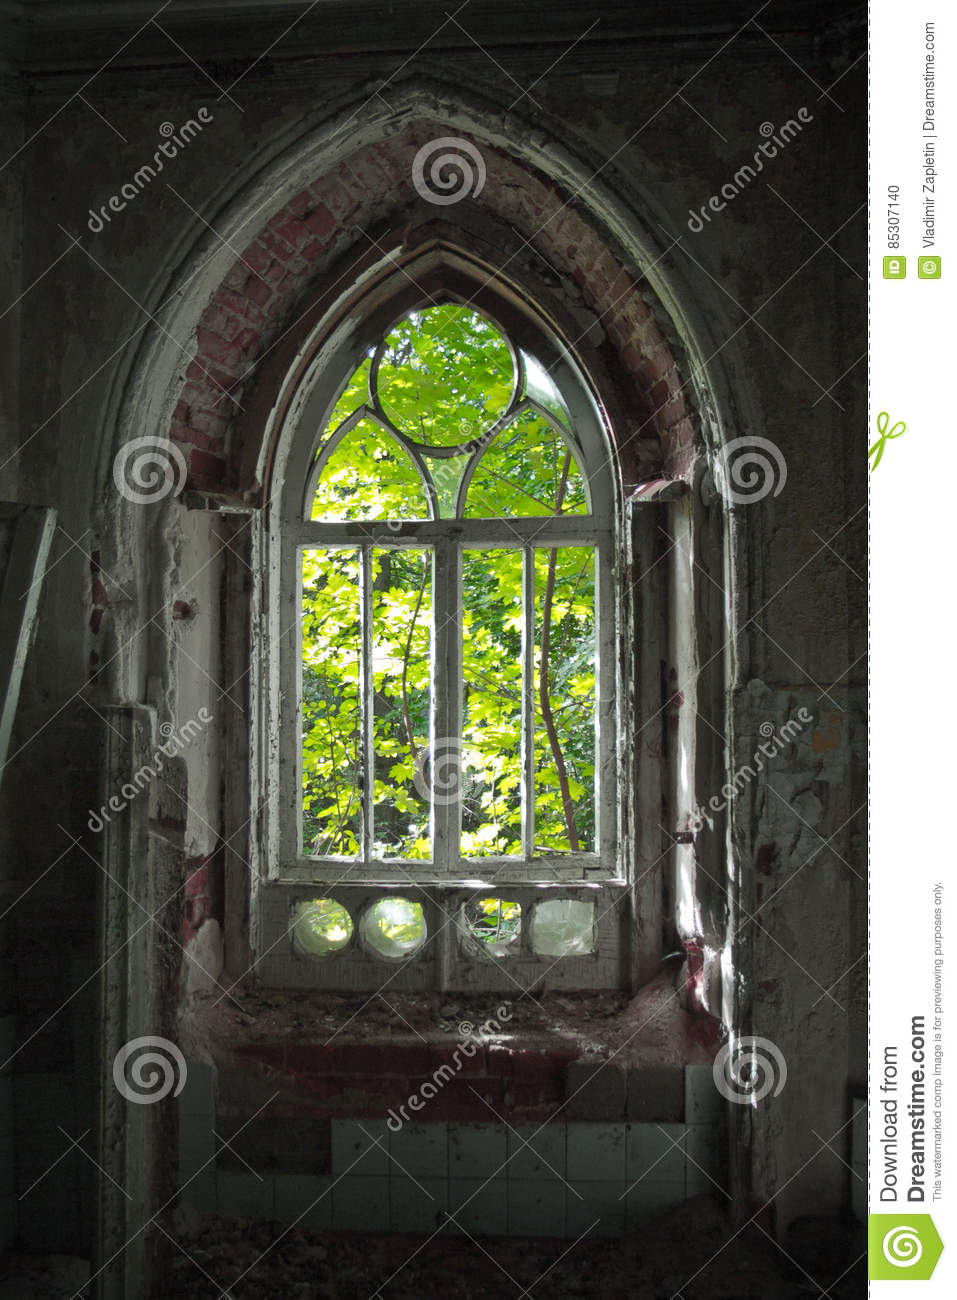 Download Old Rotten Doorway Of An Abandoned Mansion Khvostov In Gothic Style Stock Photo